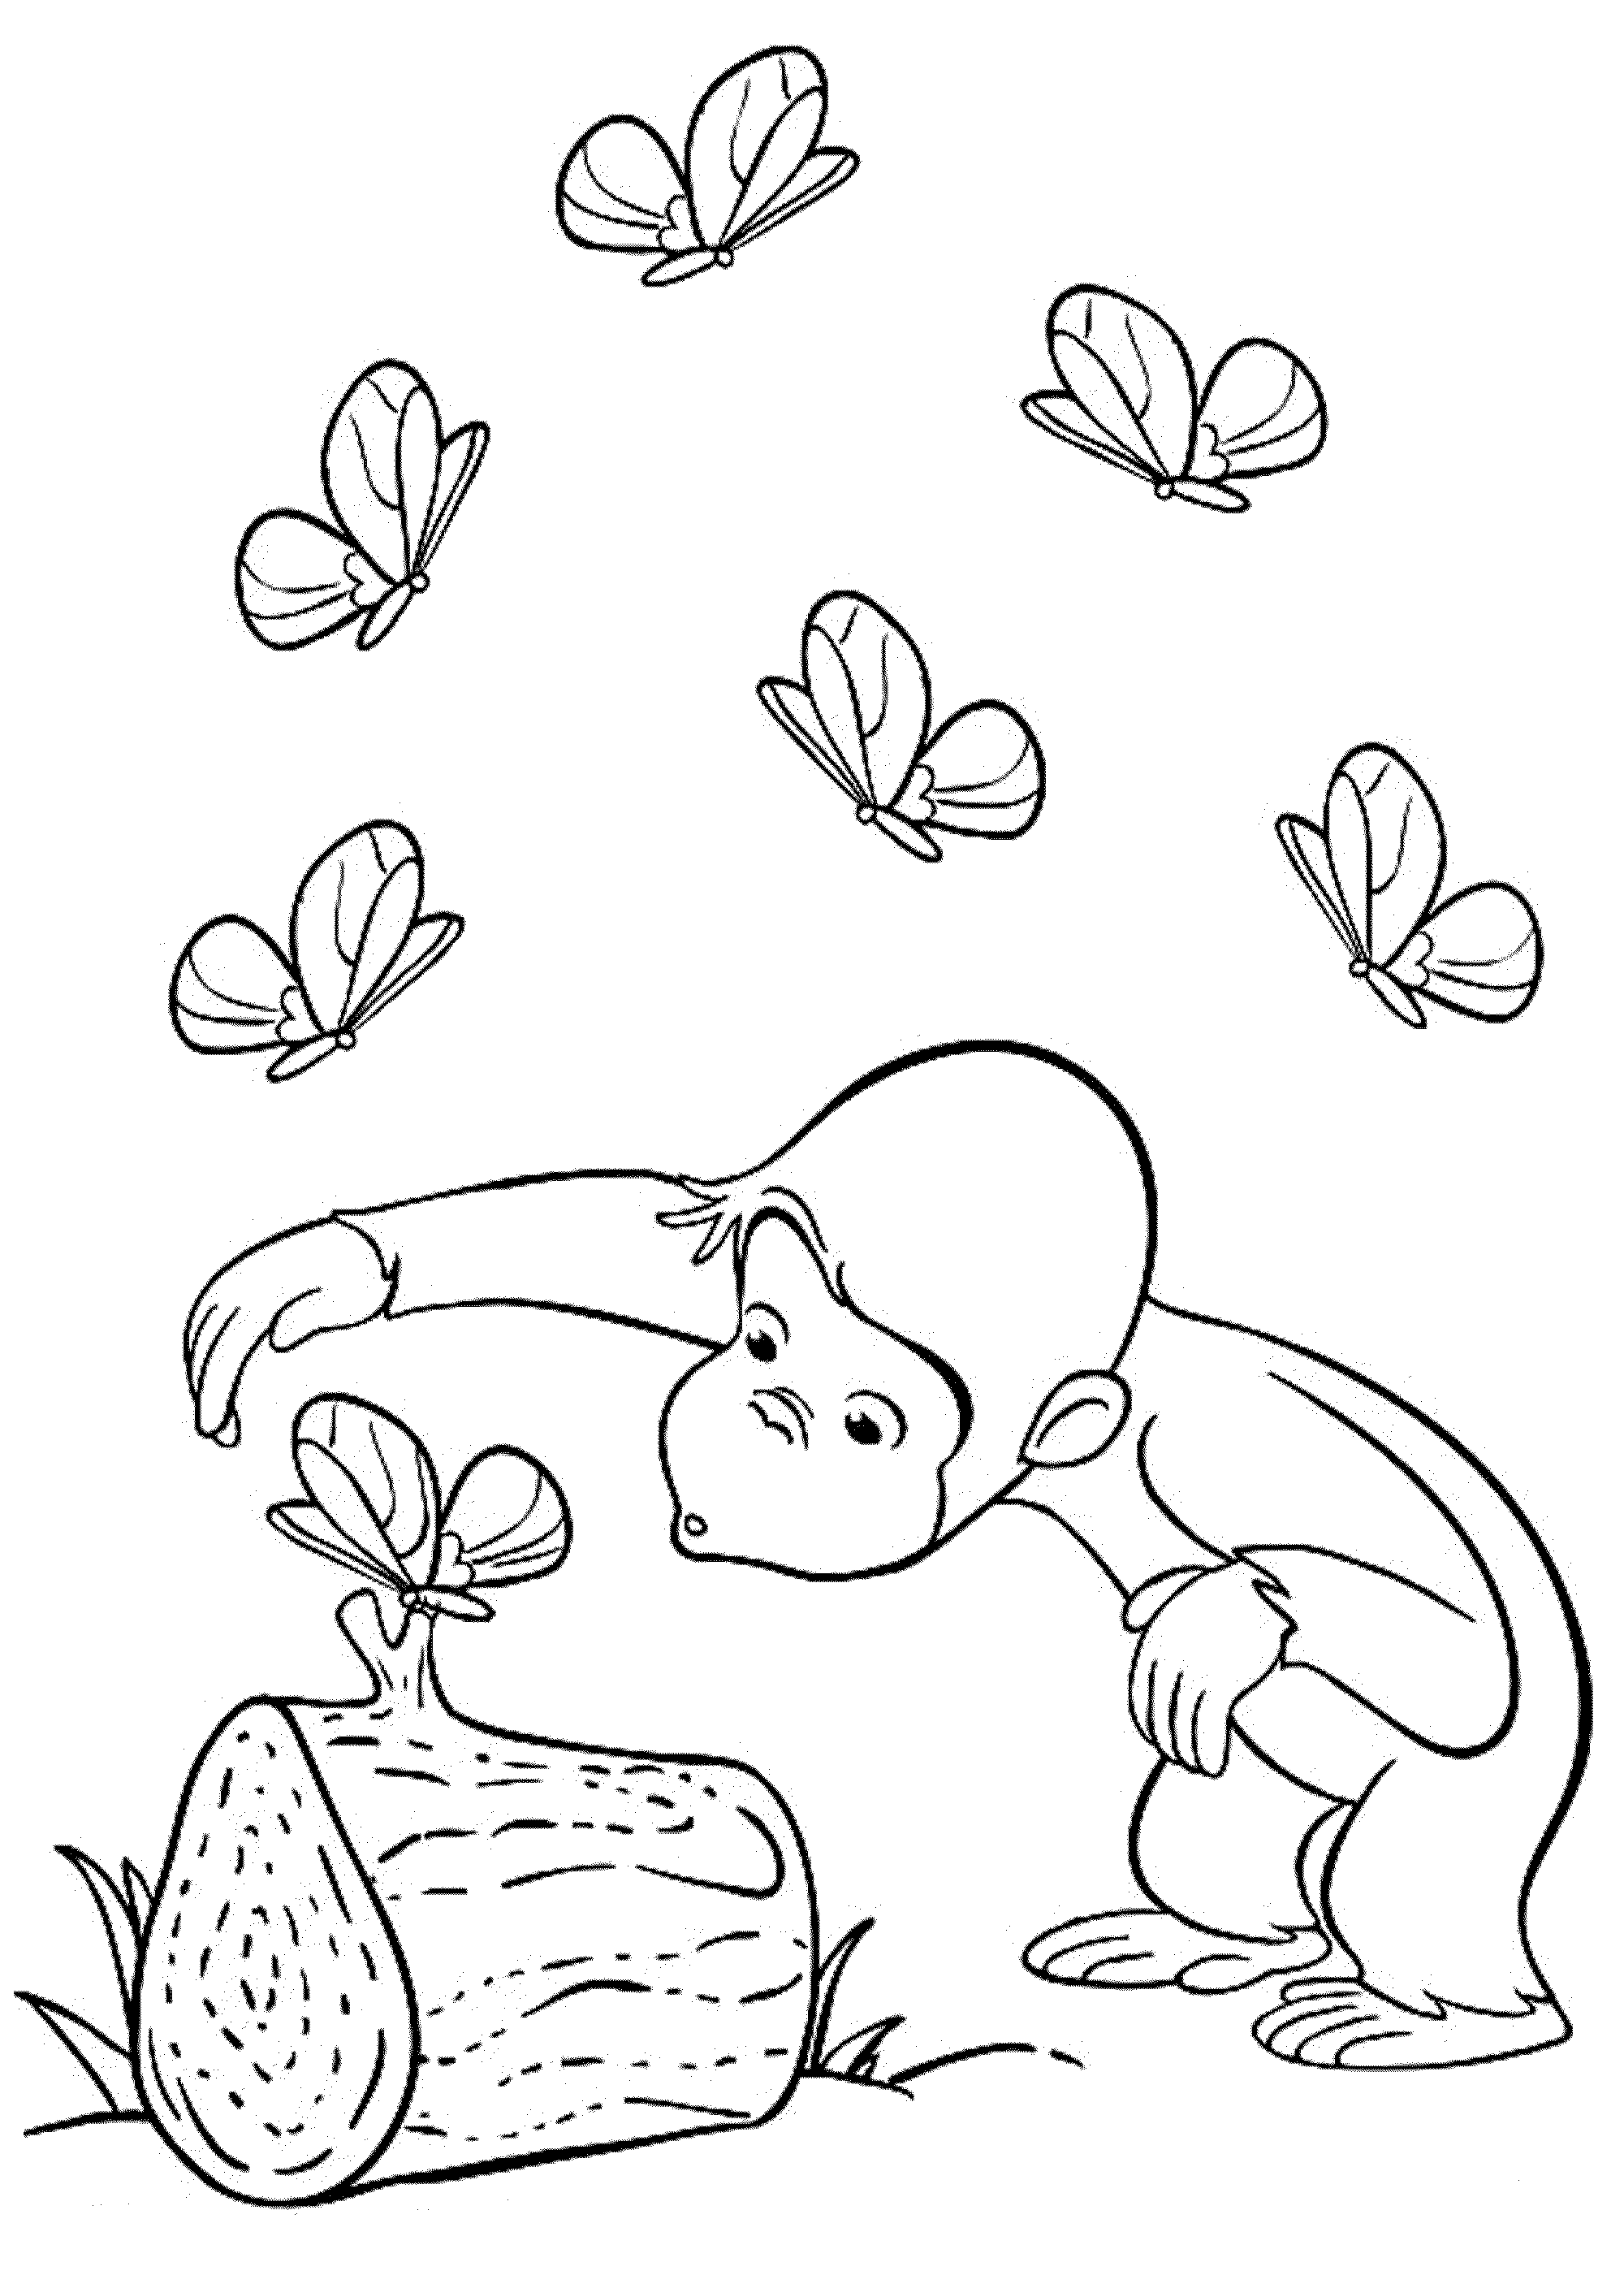 Curious George Coloring Pages - Best Coloring Pages For Kids